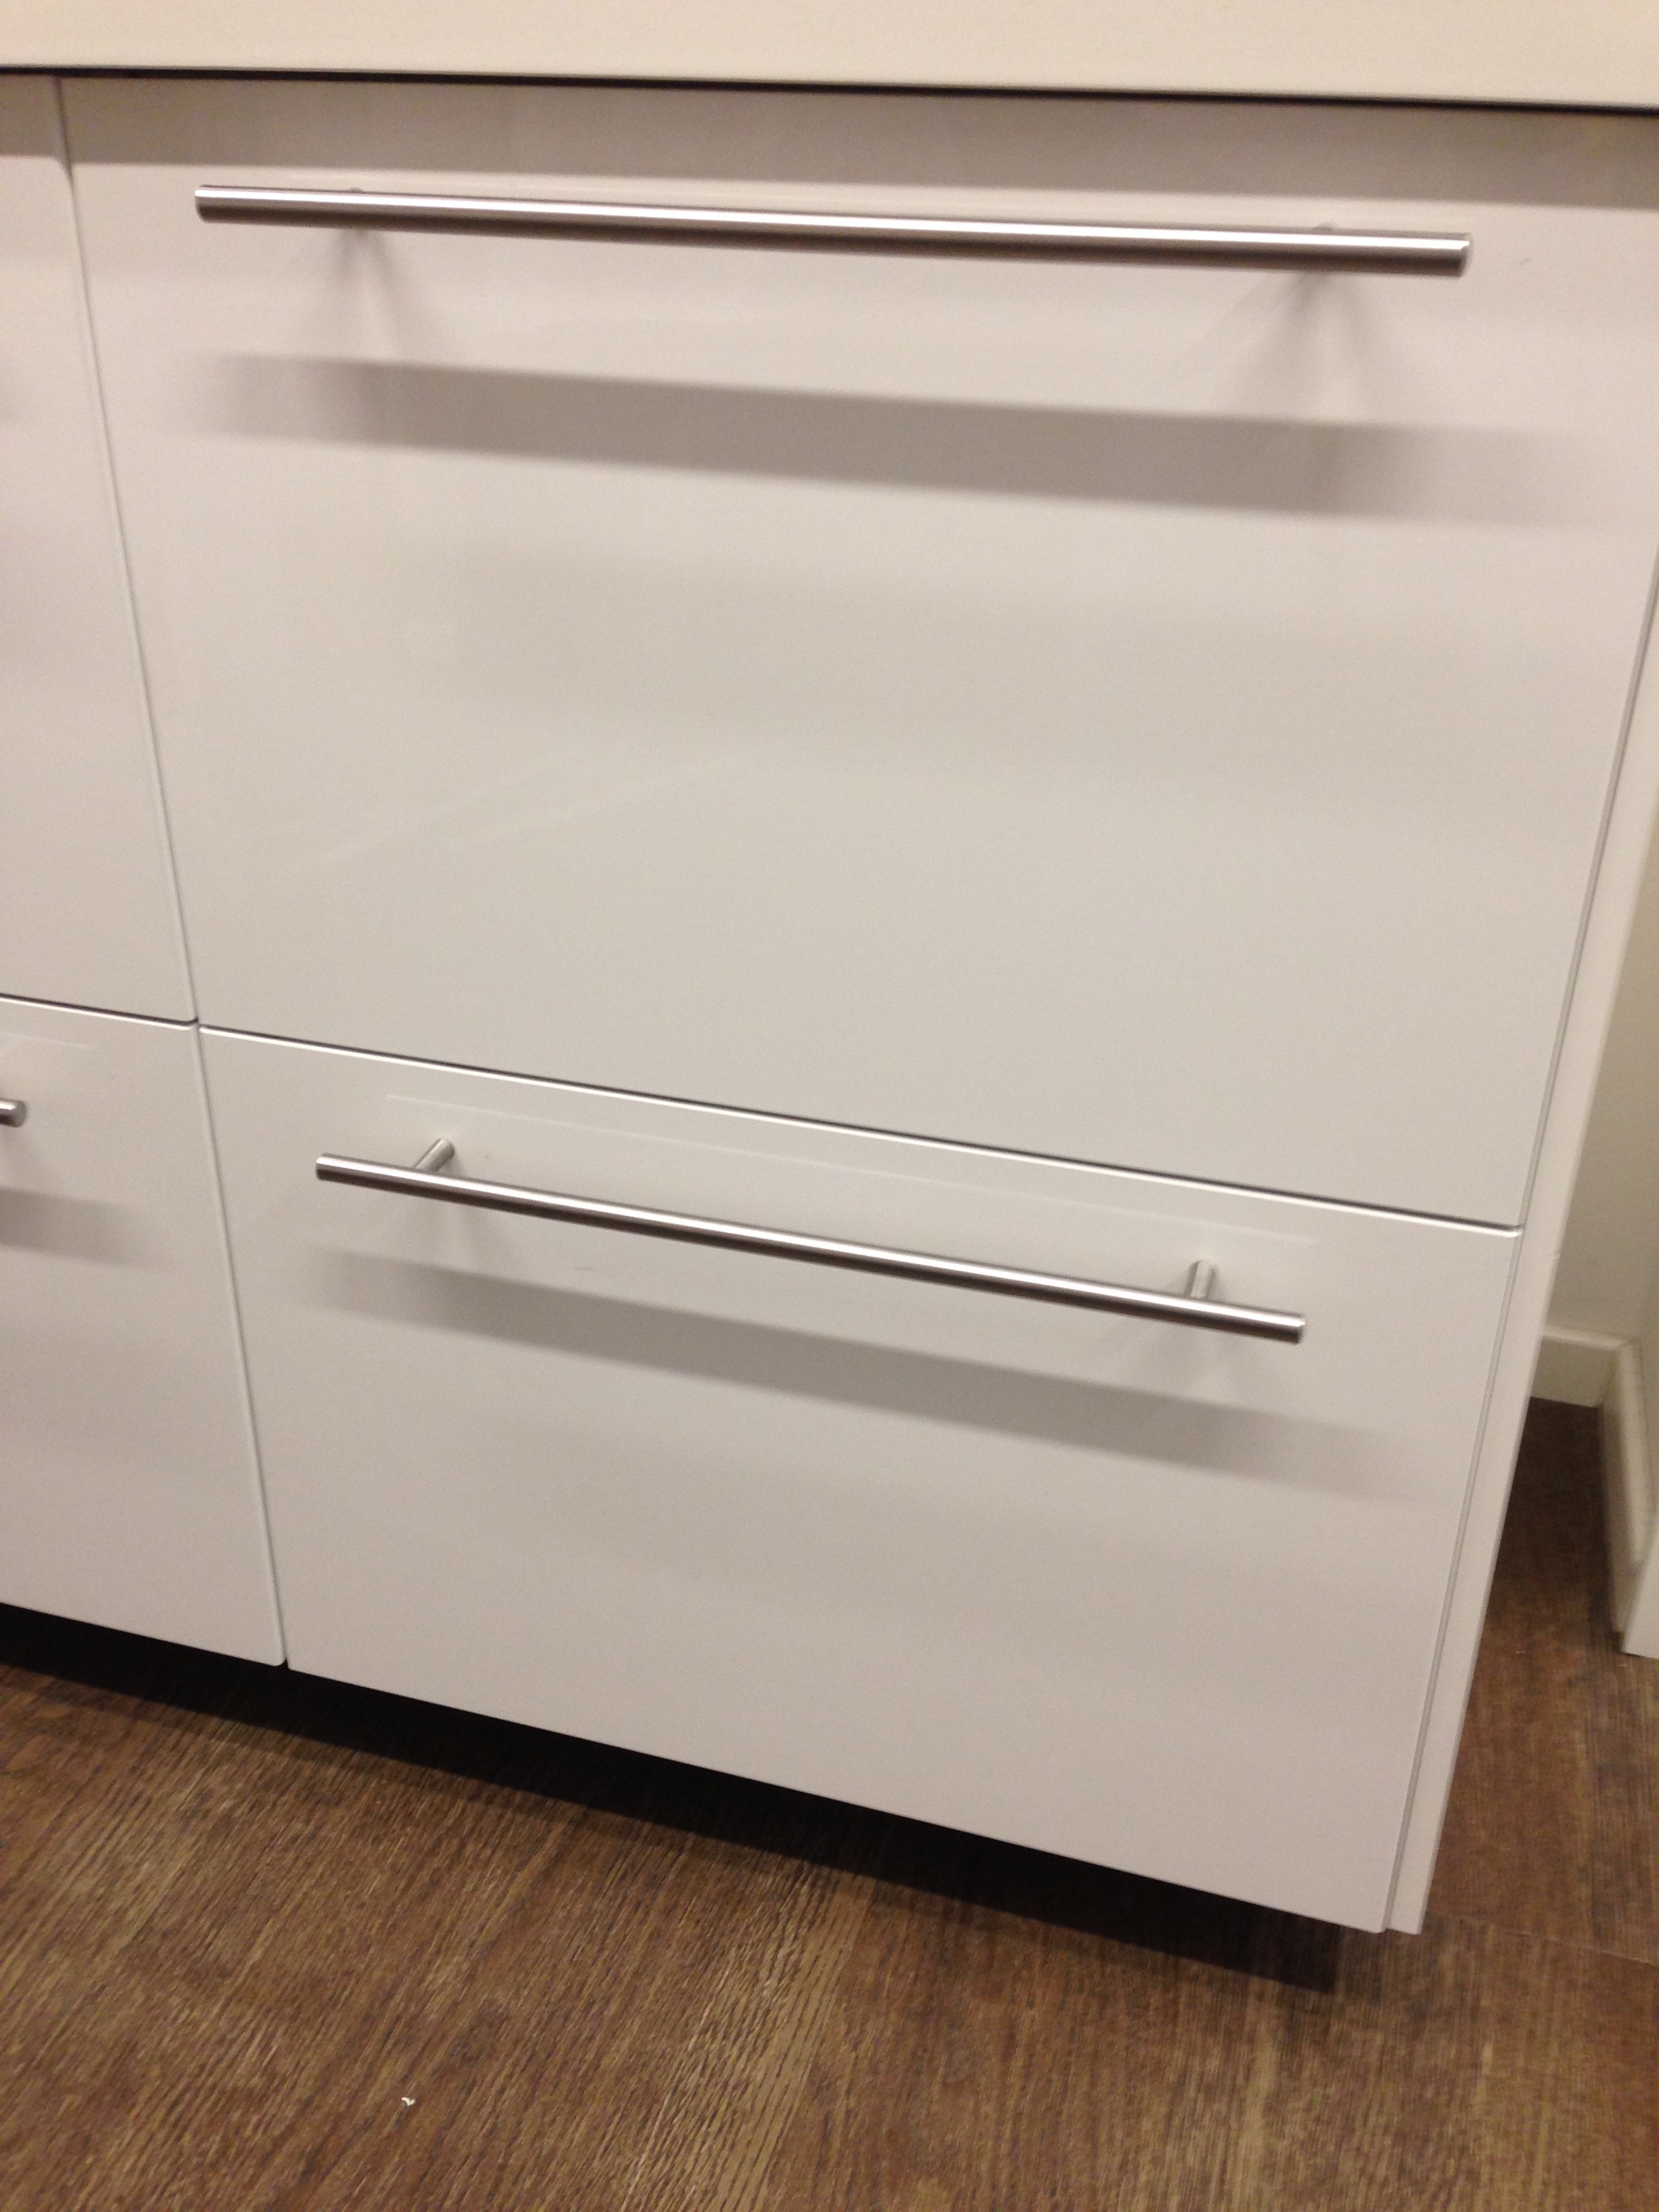 Ringhult Kitchen Cupboard Doors From Ikea In Gloss White With T Regarding White Kitchen Cupboard Doors (Image 24 of 25)